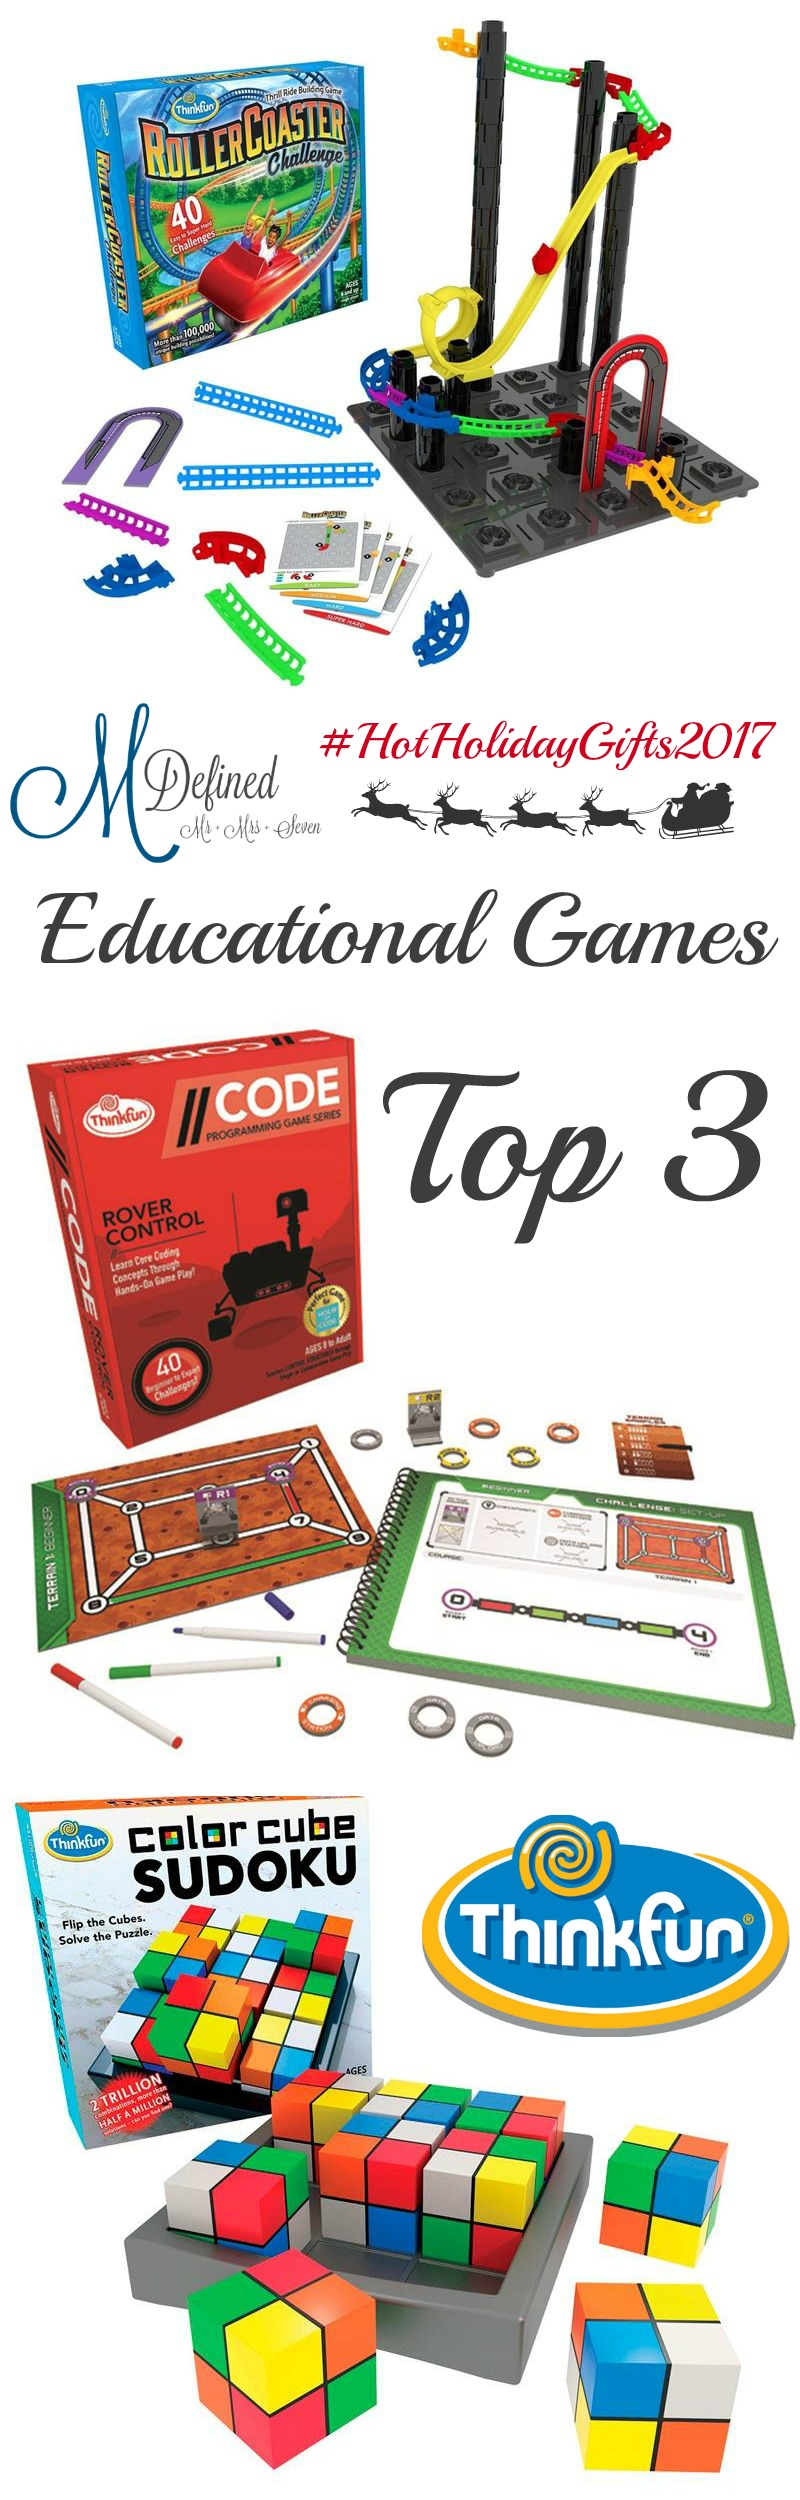 Top 3 Educational Games from ThinkFun Giveaway